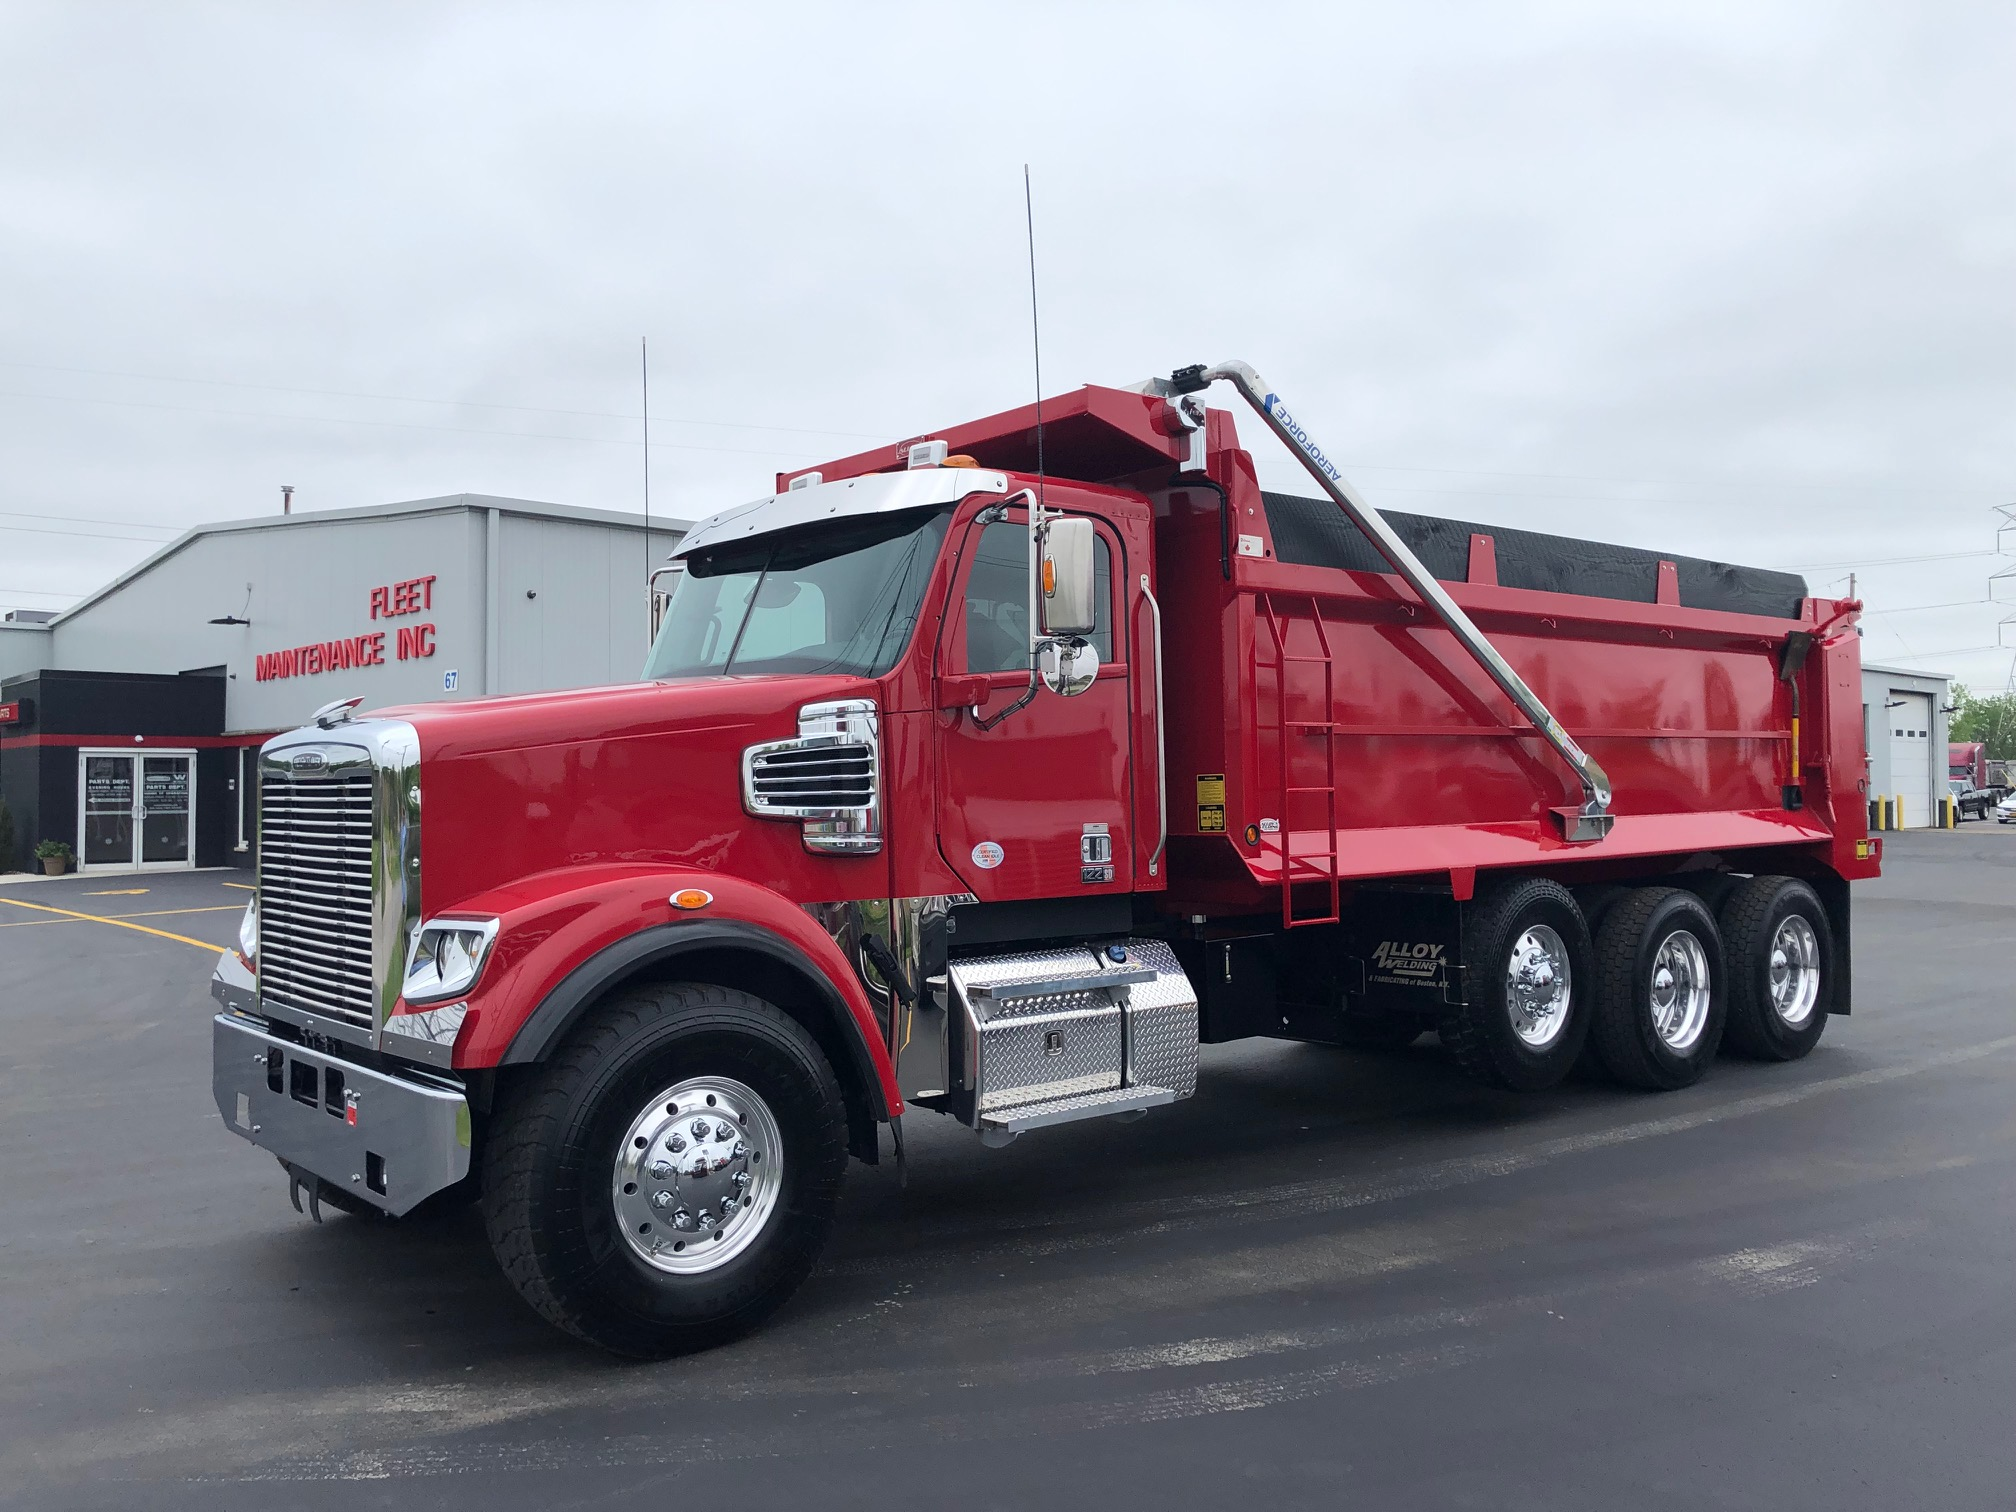 2020 Freightliner 122SD- Red